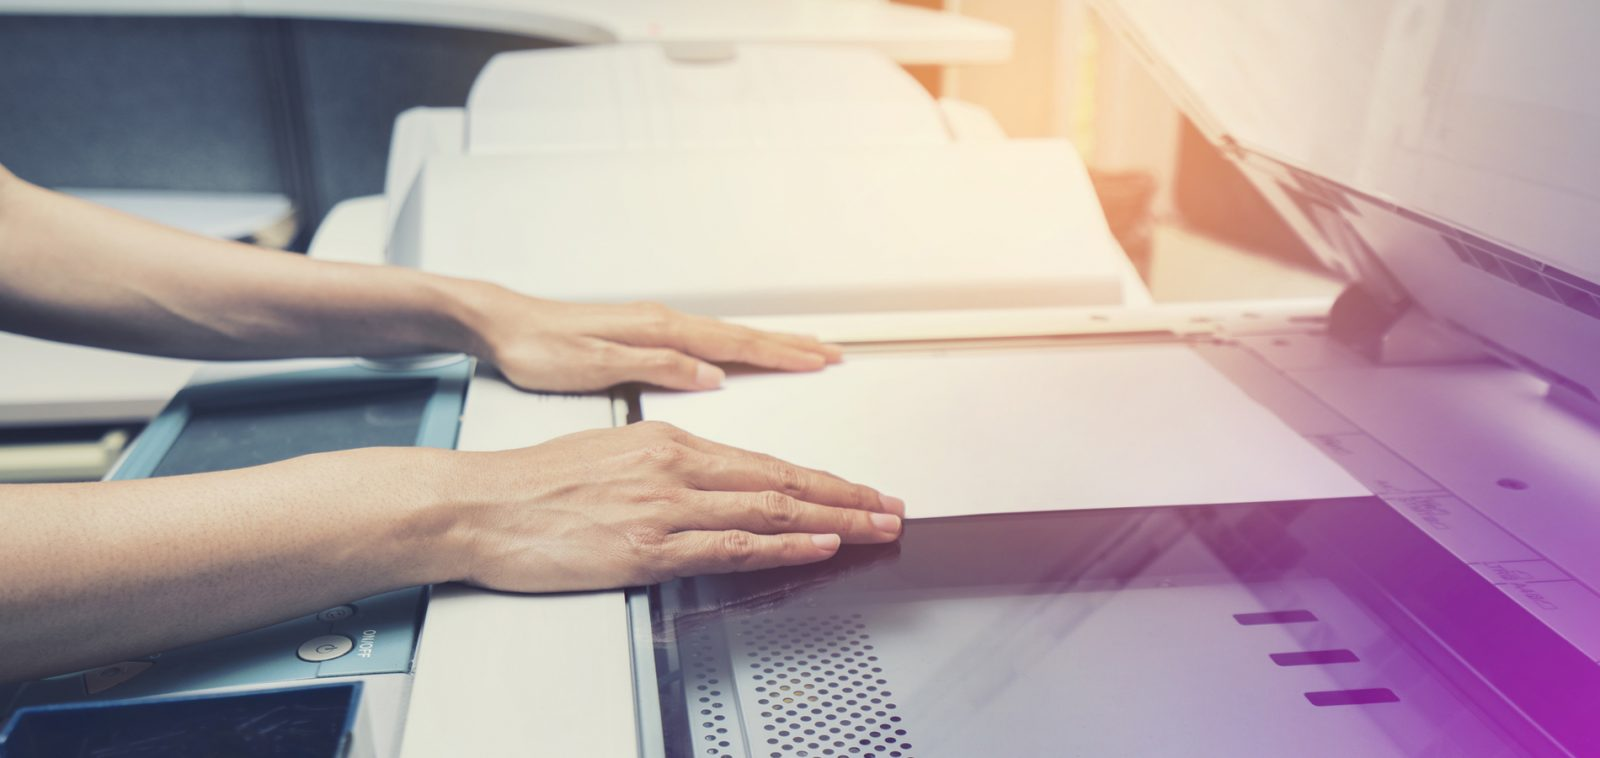 Ever wondered how document scanning can help your small business save money?